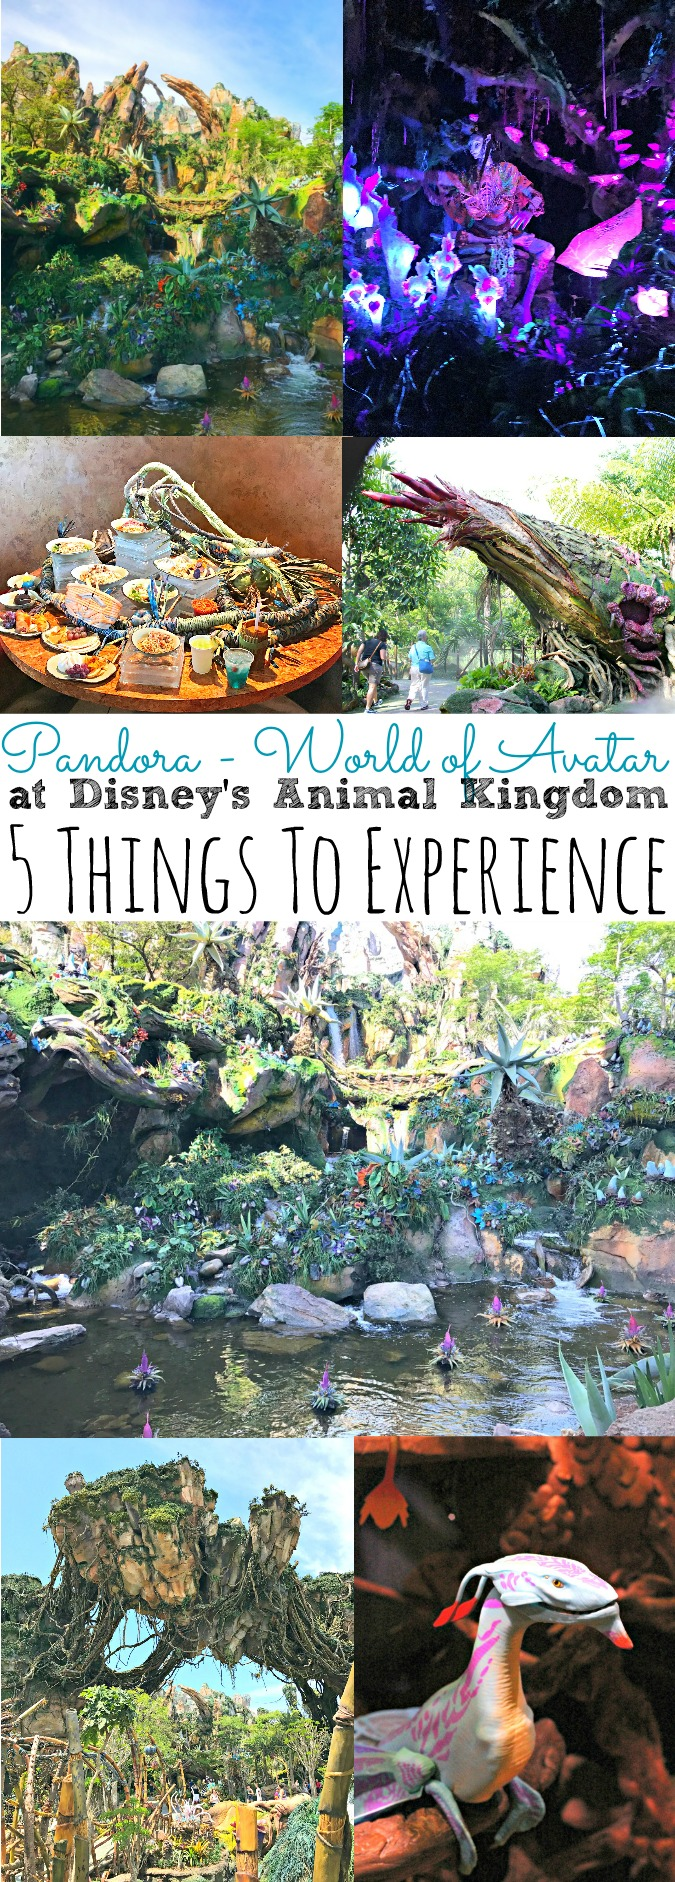 Pandora World of Avatar at Disney's Animal Kingdom 5 Things To Experience